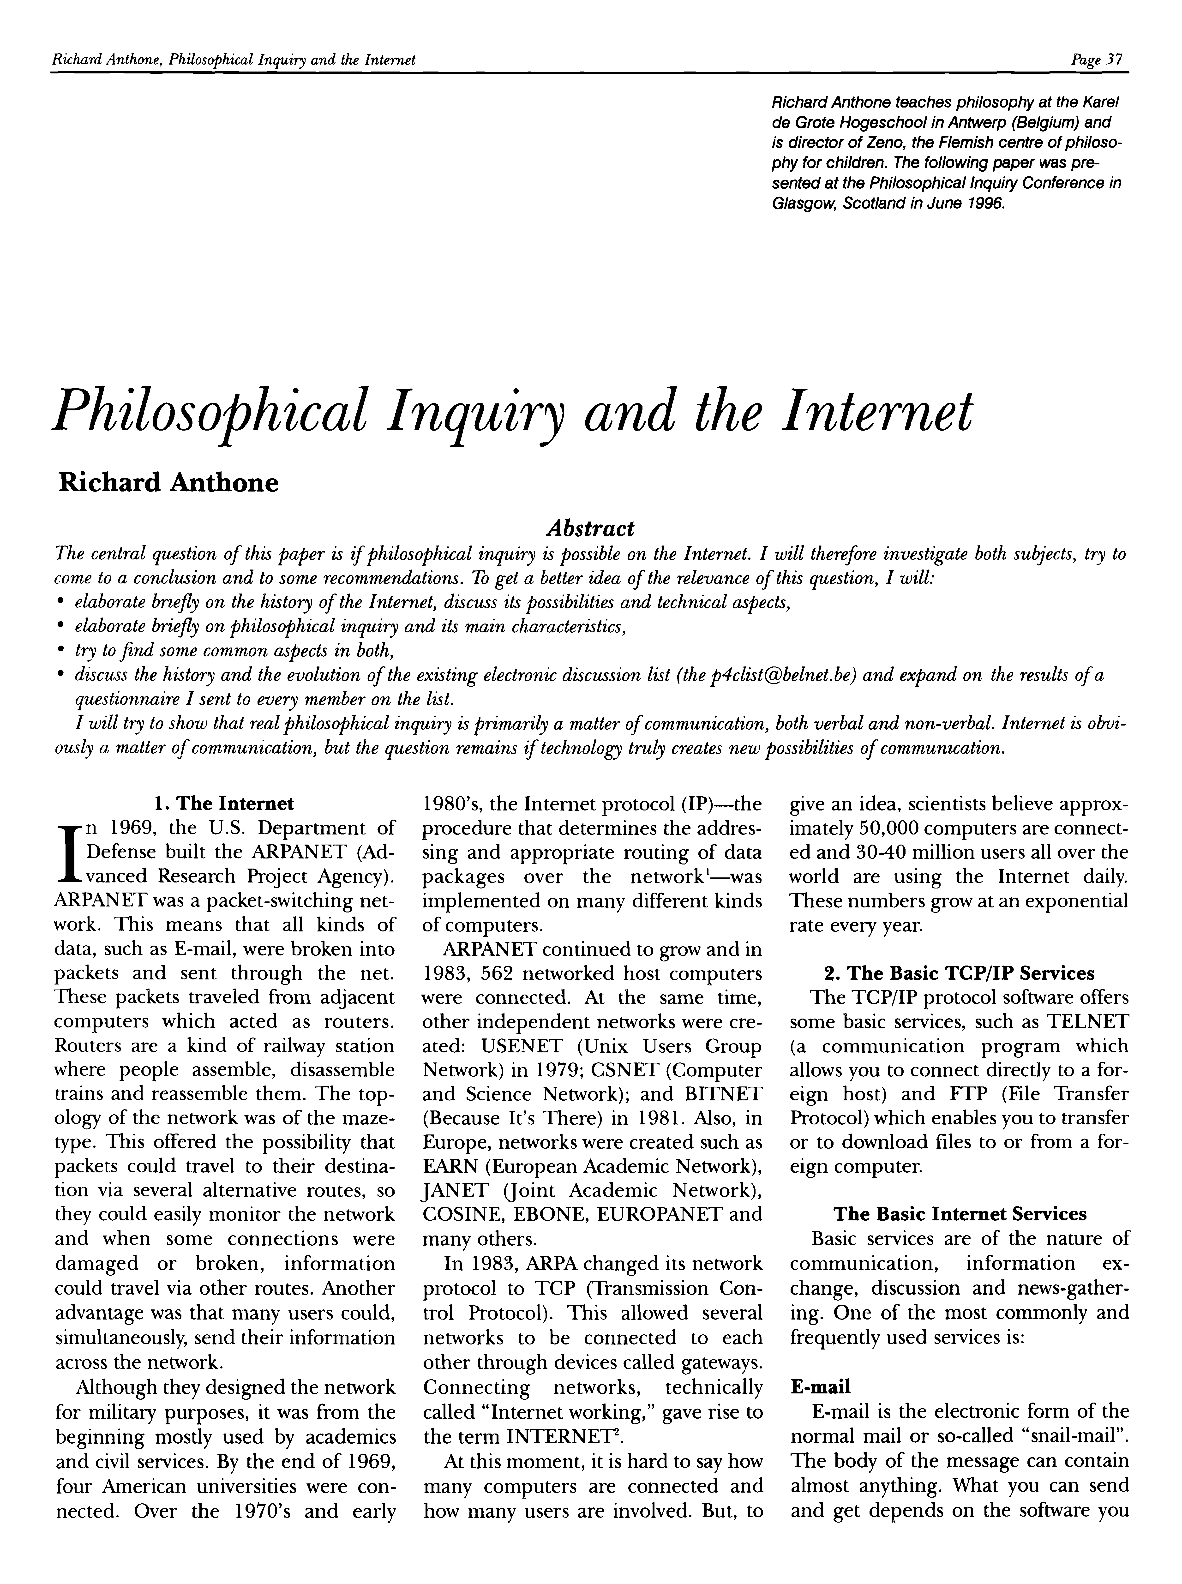 Philosophical Inquiry and the Internet - Richard Anthone